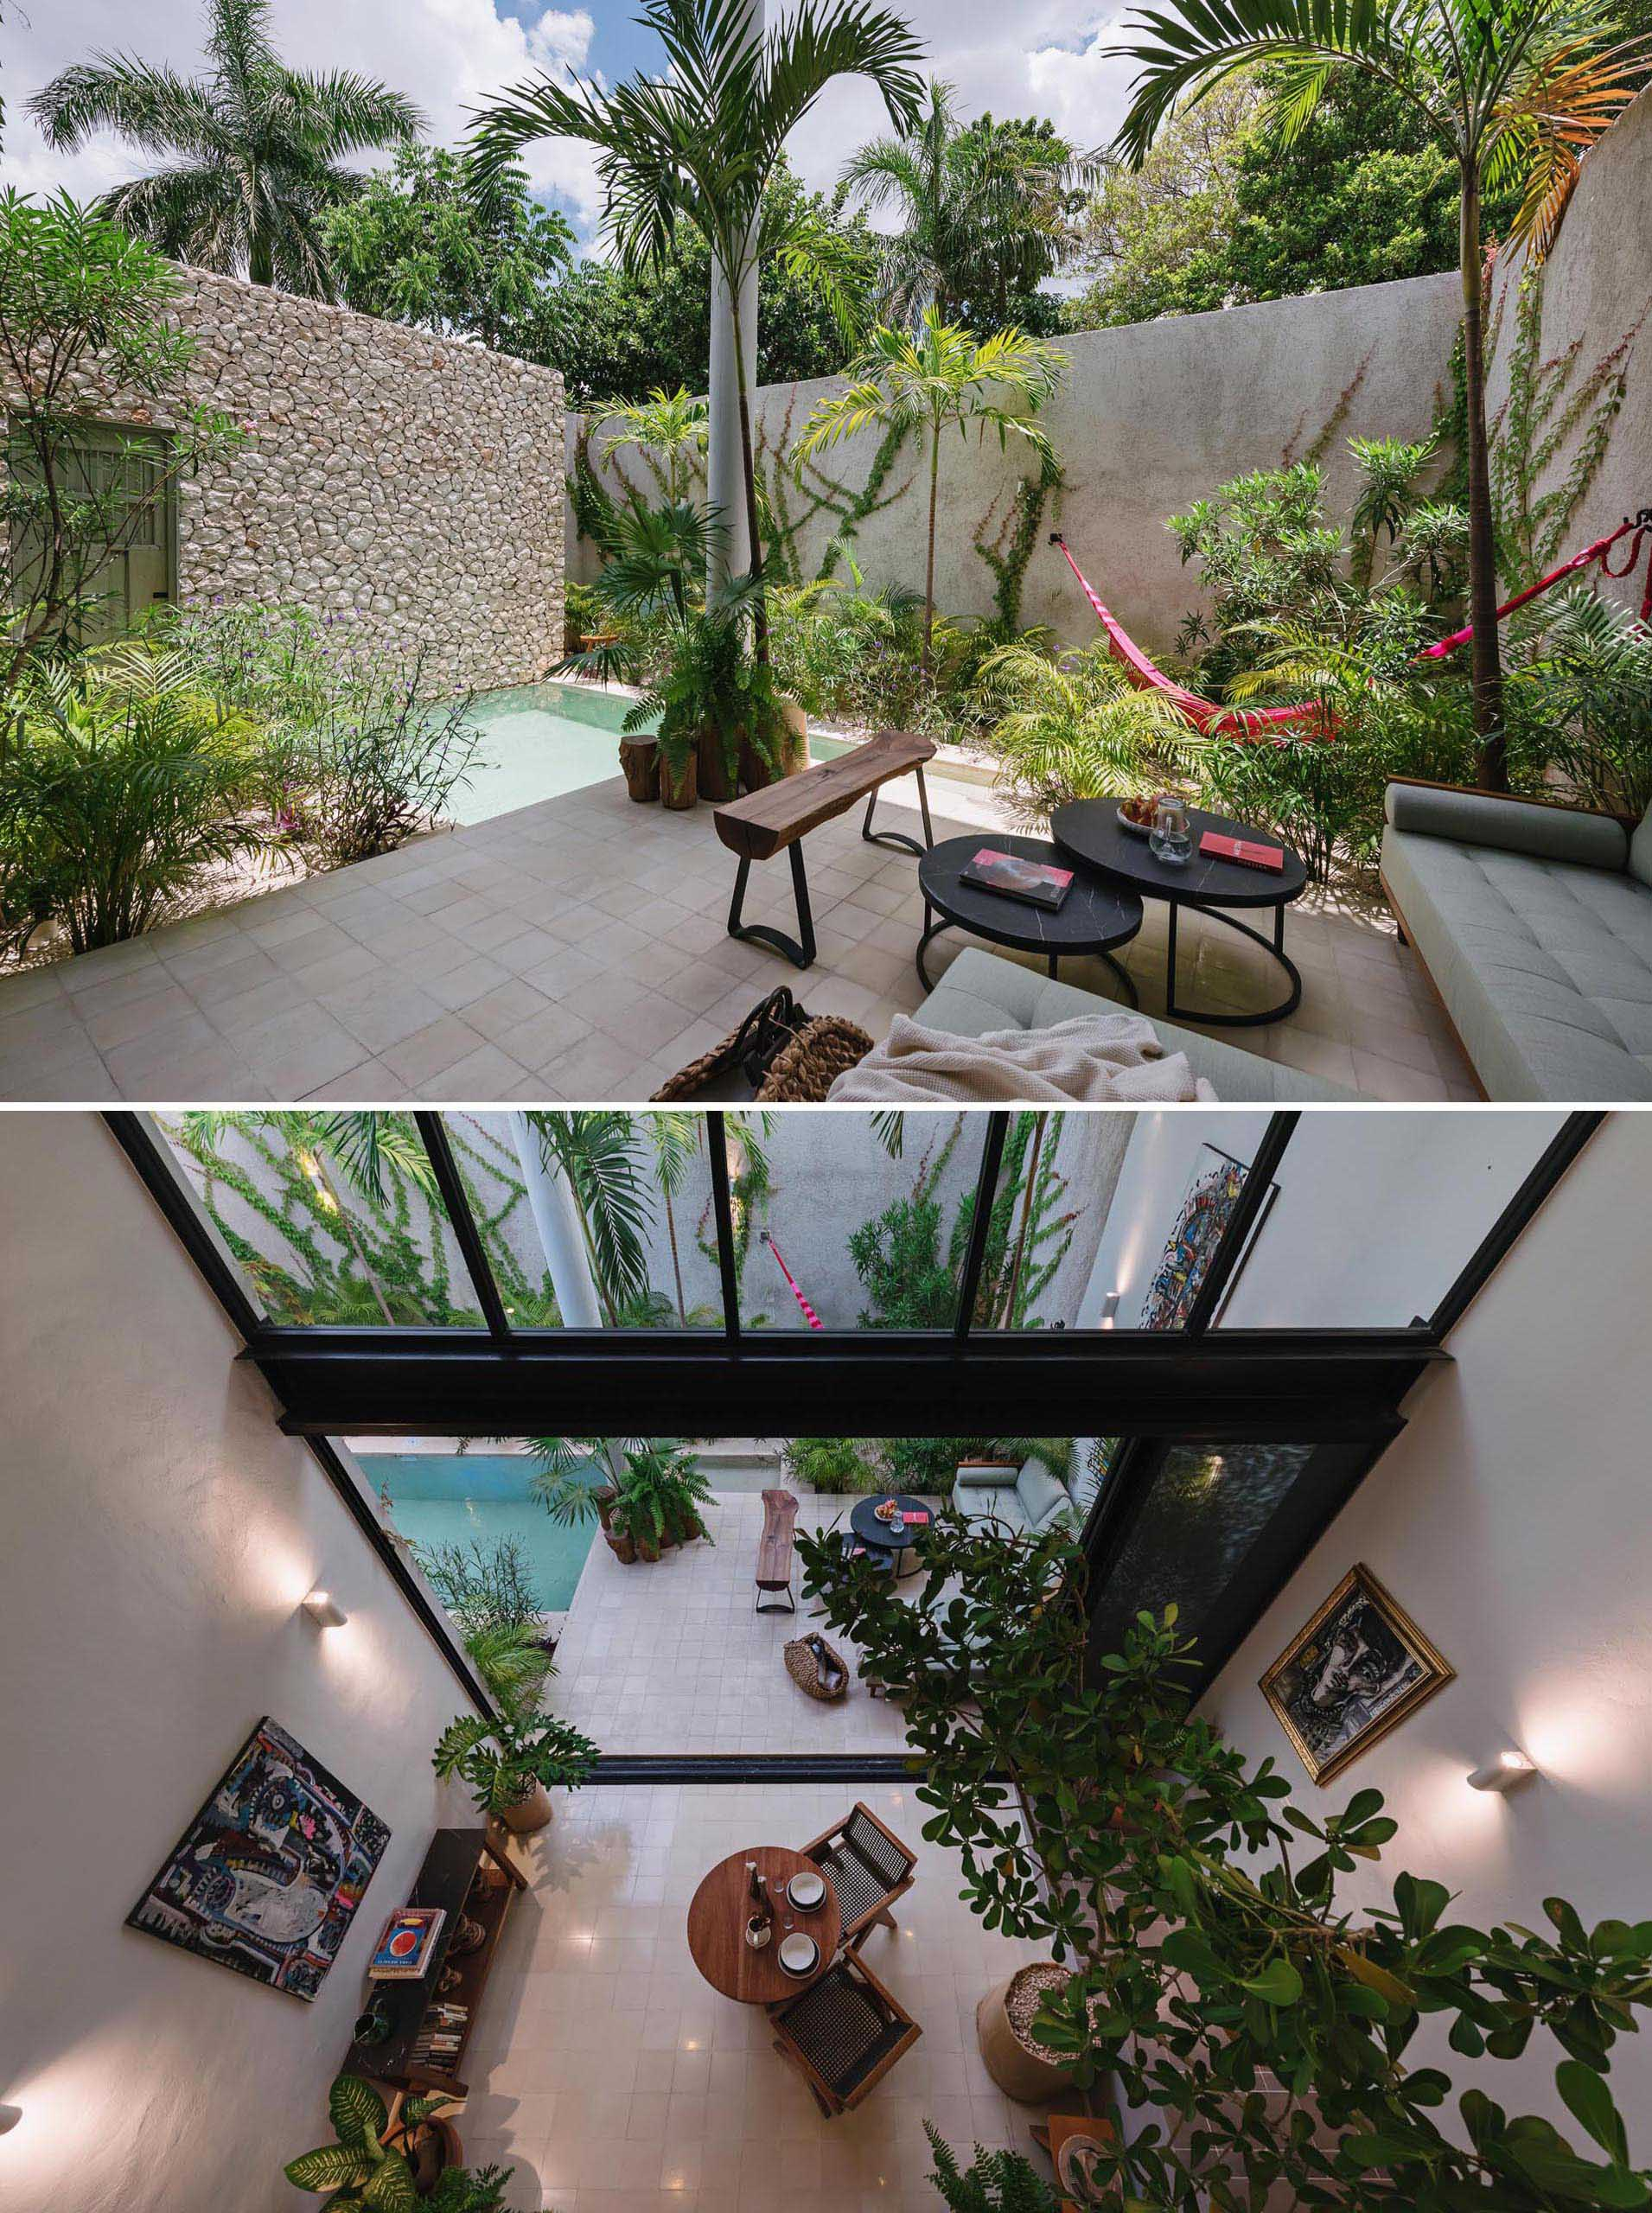 An outdoor living room with a comfortable sofa, a hammock surrounded by tropical plants, and a small swimming pool.